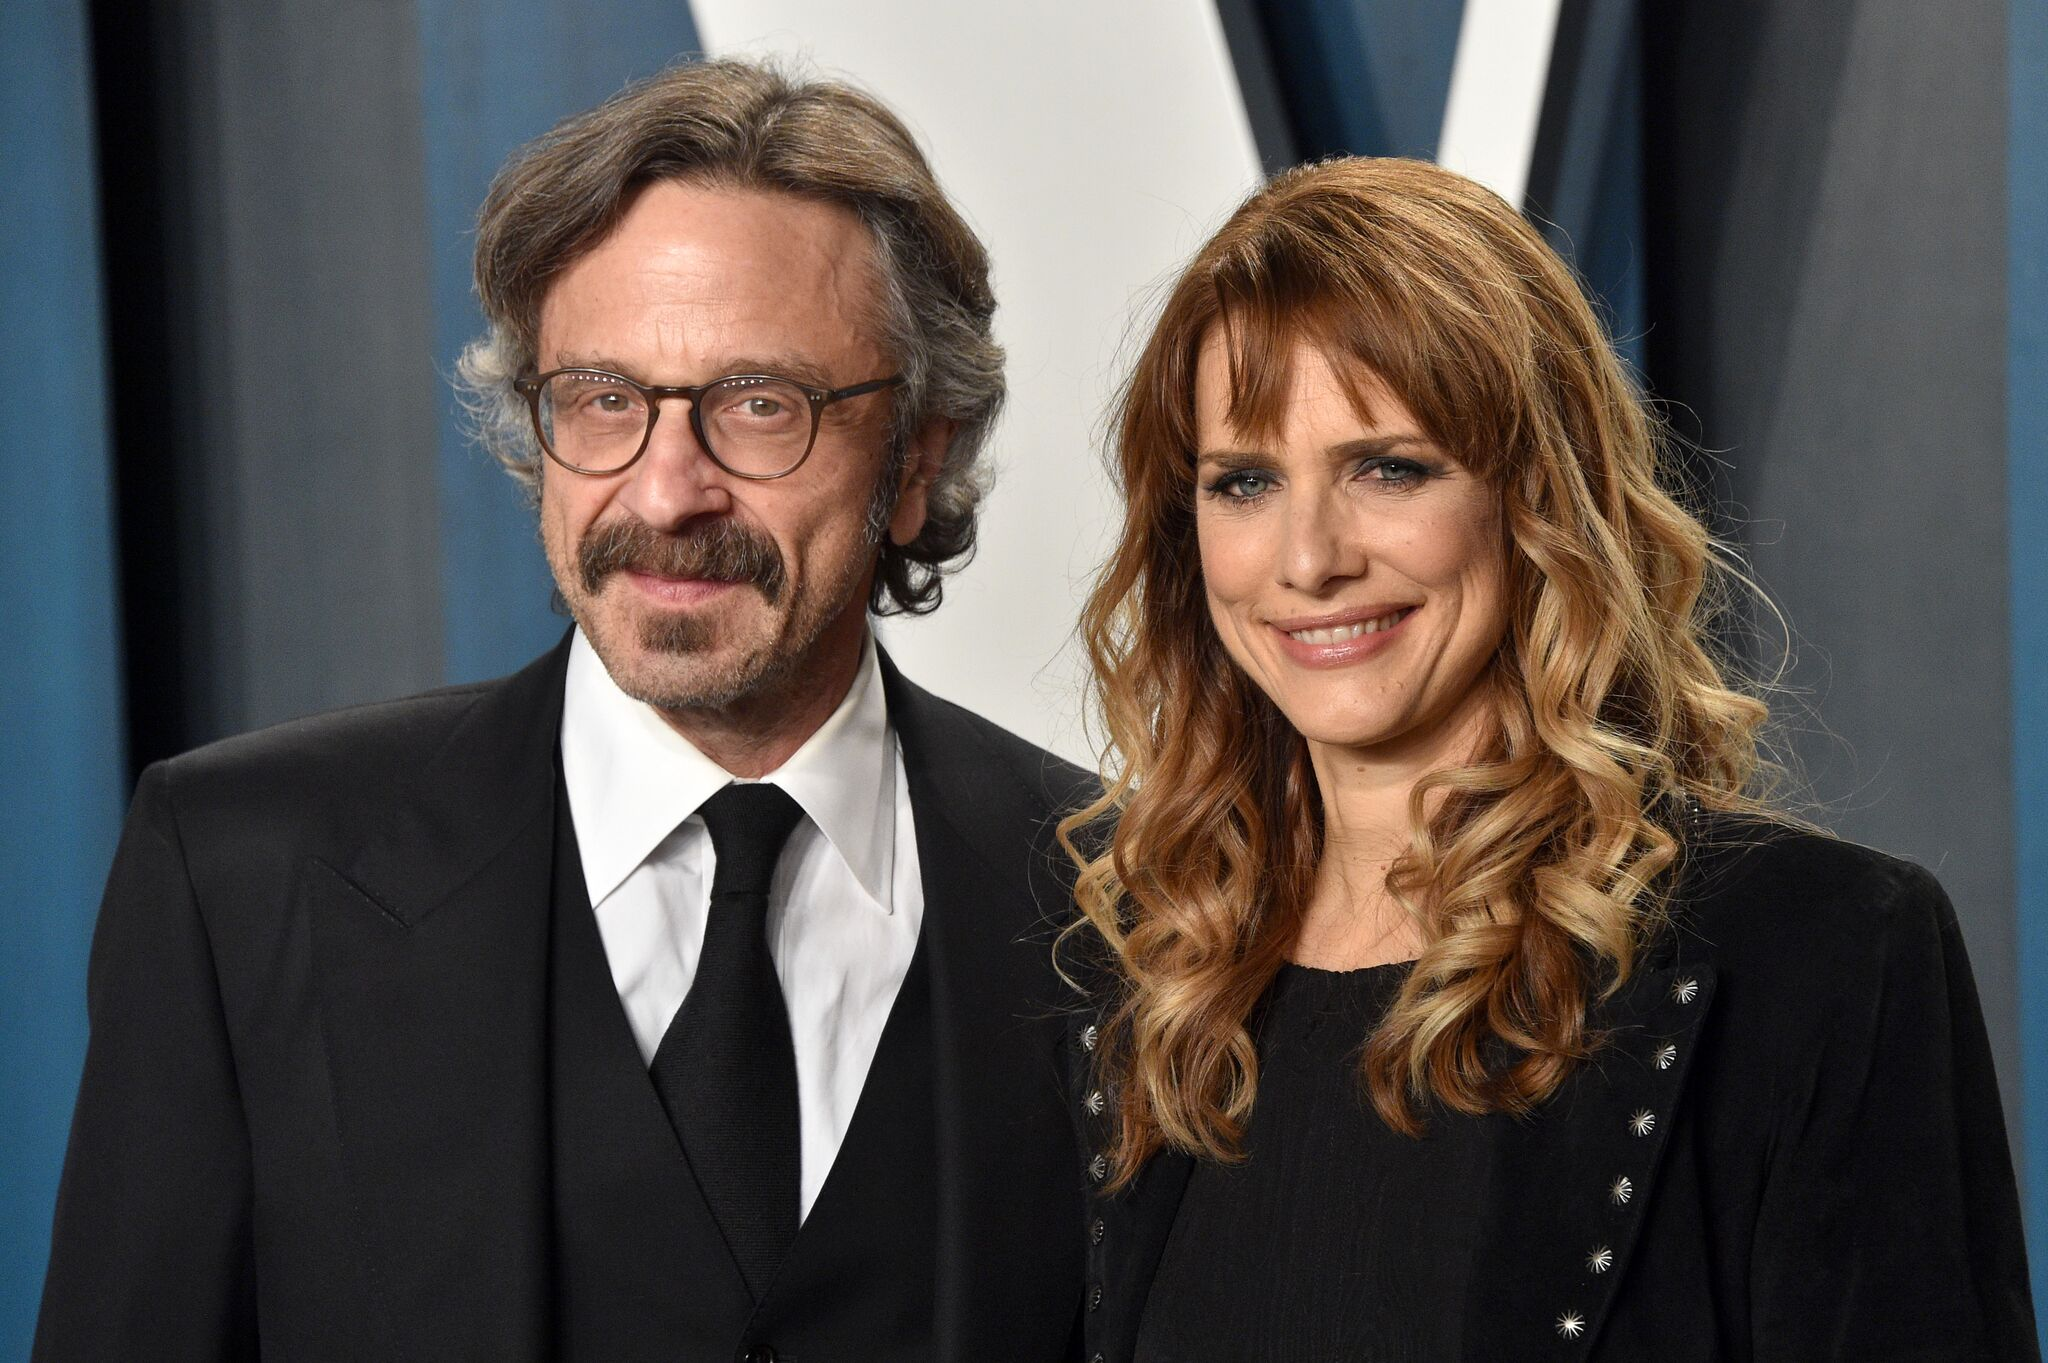 Marc Maron and Lynn Shelton at the 2020 Vanity Fair Oscar Party on February 09, 2020. | Photo: Getty Images